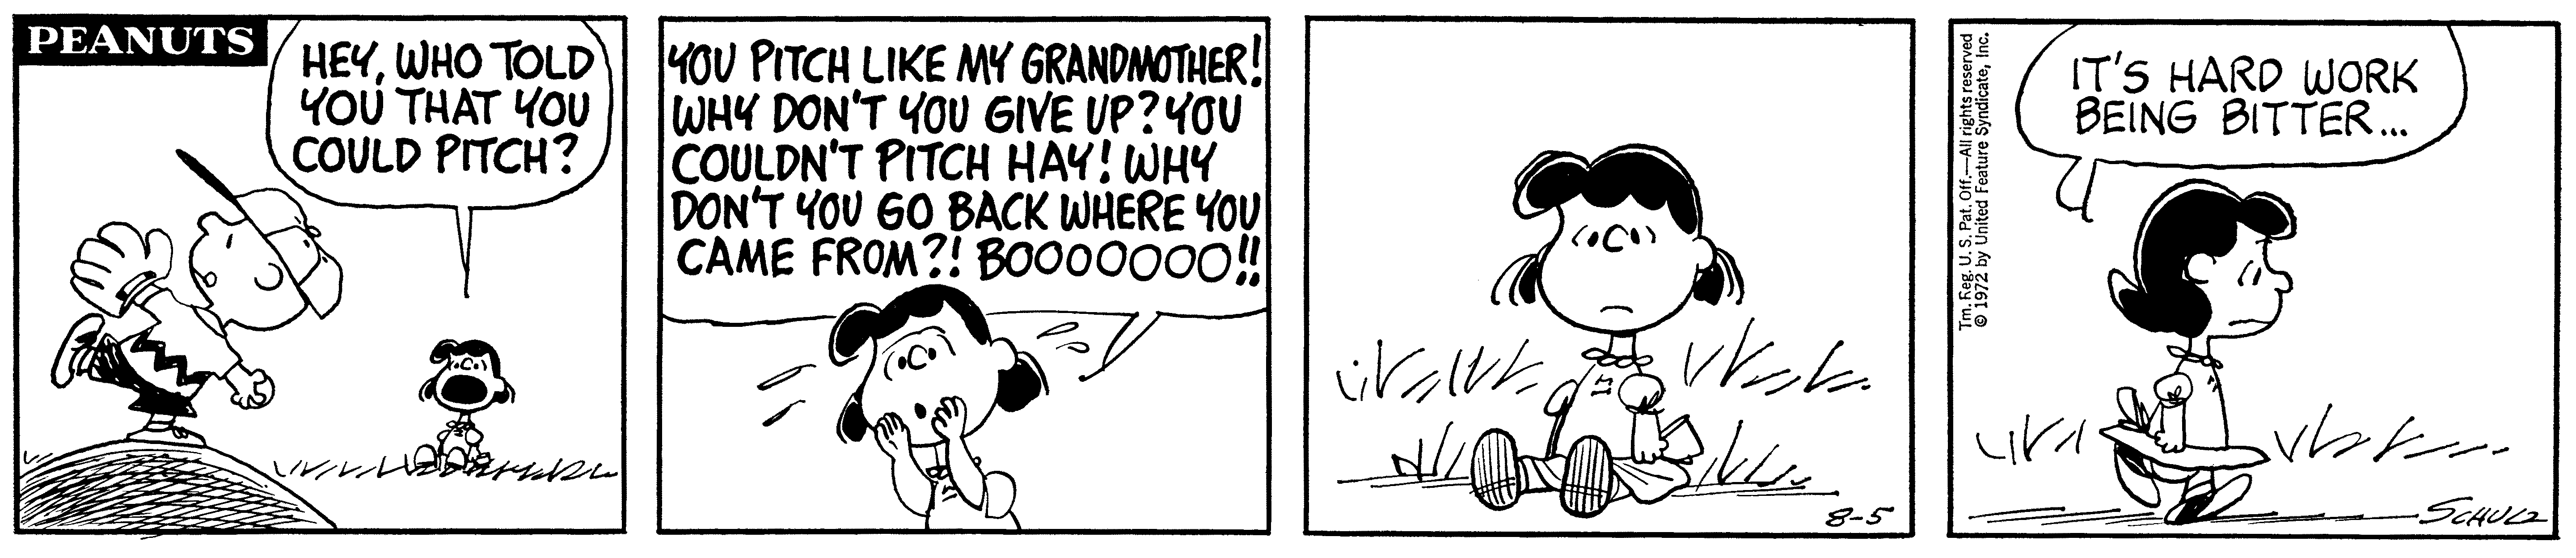 lucy peanuts 2015 related - photo #27